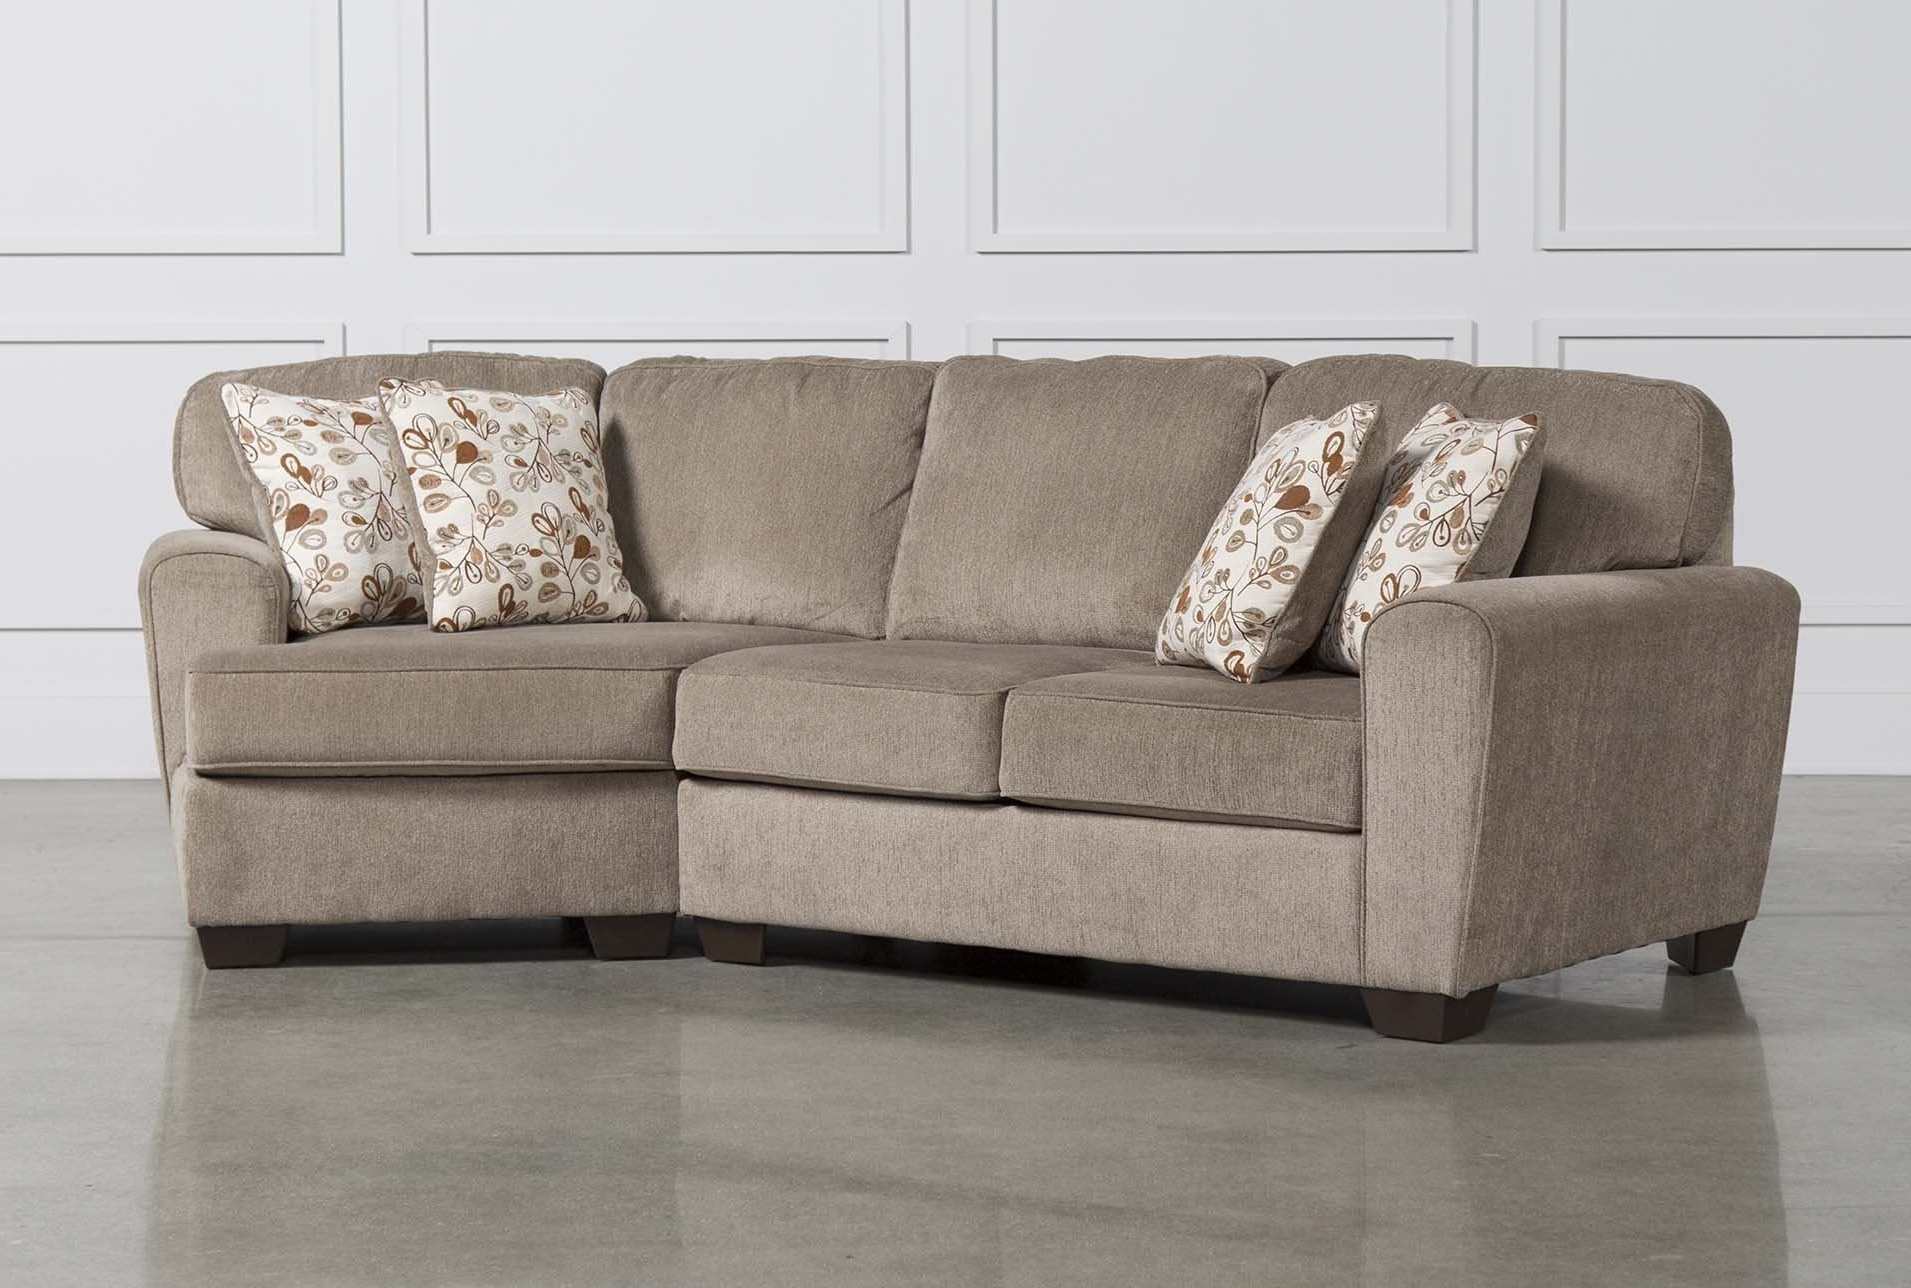 Latest Sectional Sofas With Cuddler With Regard To Beautiful Sectional Sofa With A Cuddler – Mediasupload (View 10 of 15)